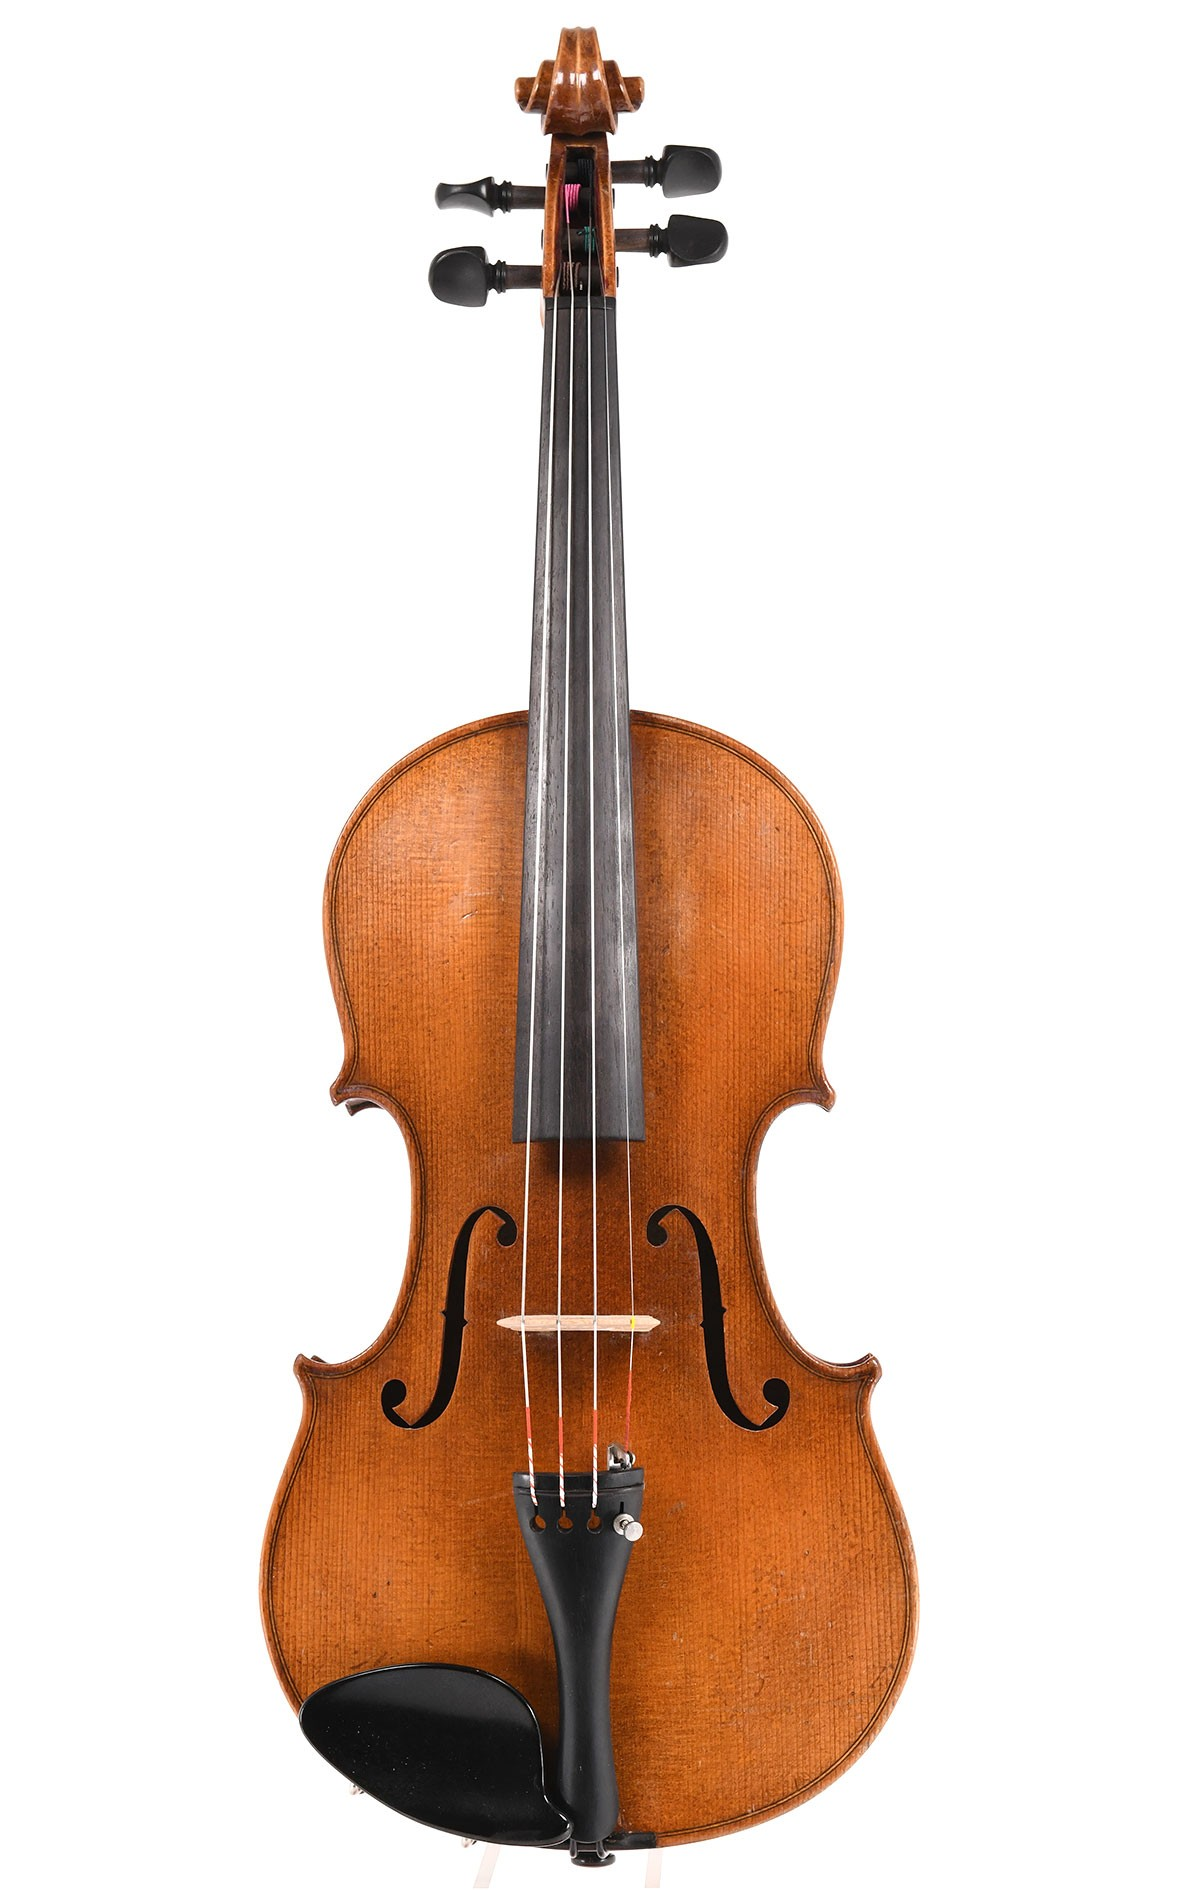 Old Markneukirchen violin made in approximately 1940